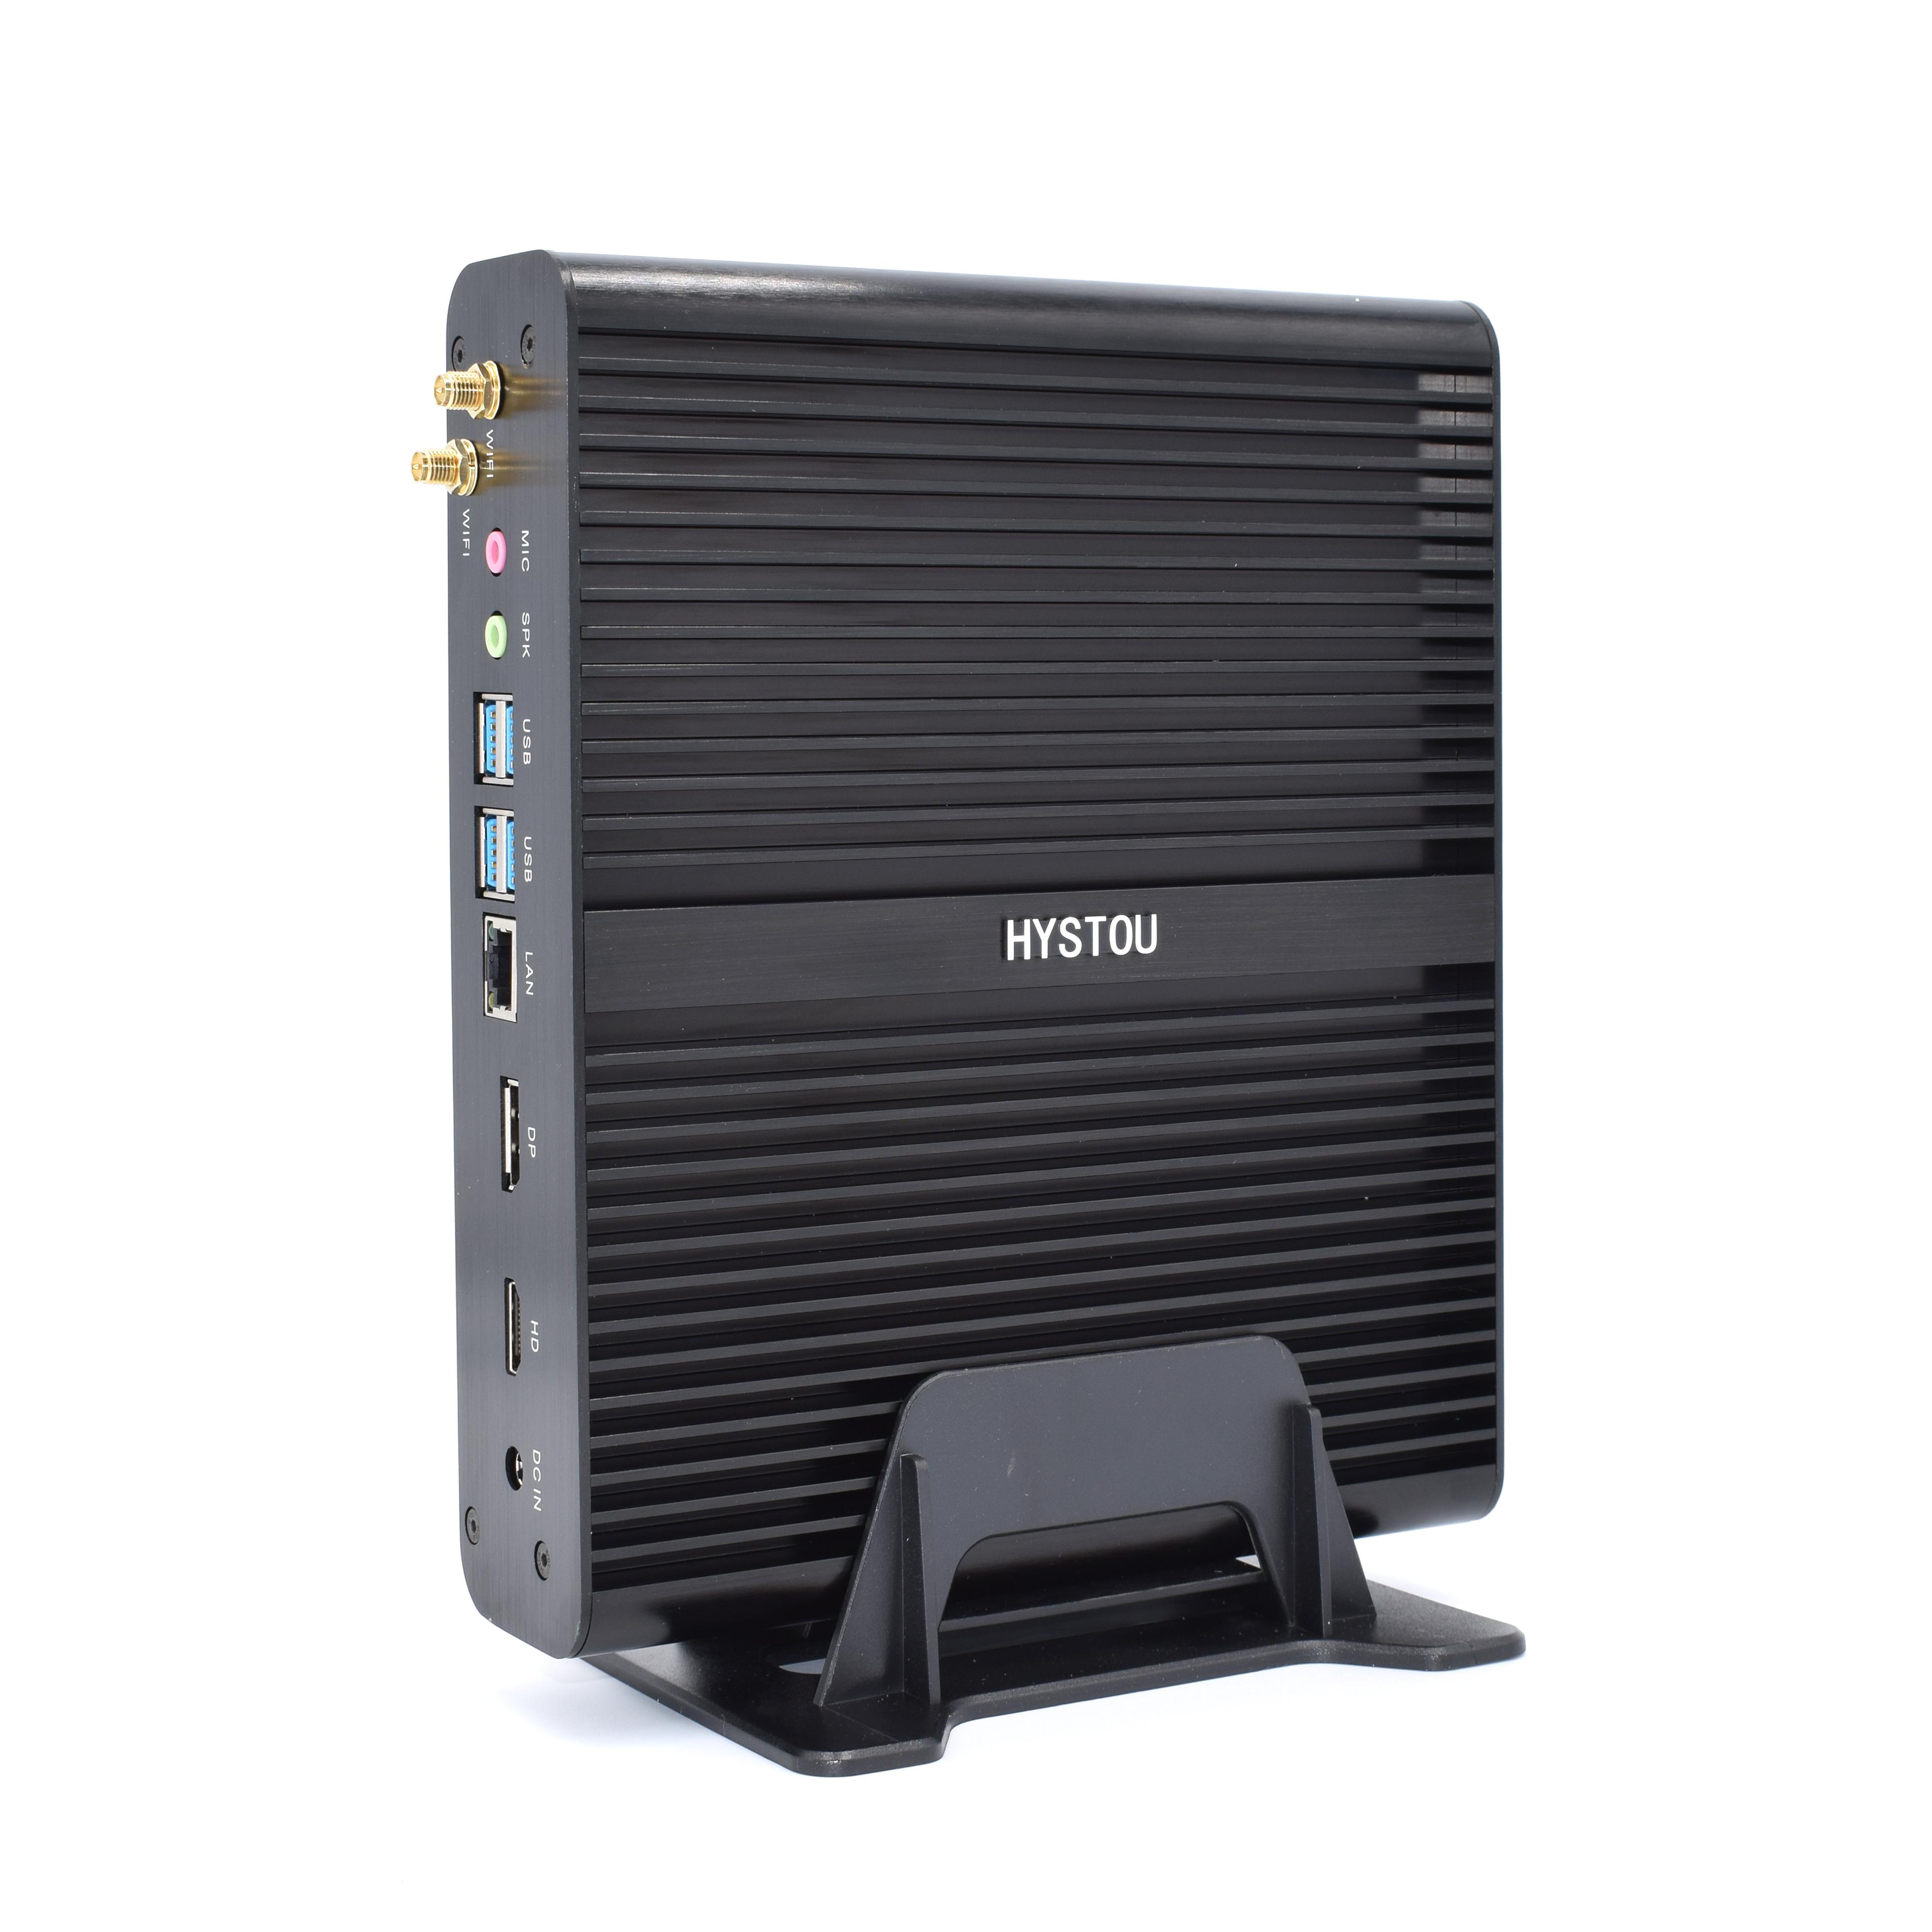 Hystou new mini <strong>pc</strong> i7 with 8th gen i7 8550u desktop <strong>pc</strong> wifi function dual core mini computer